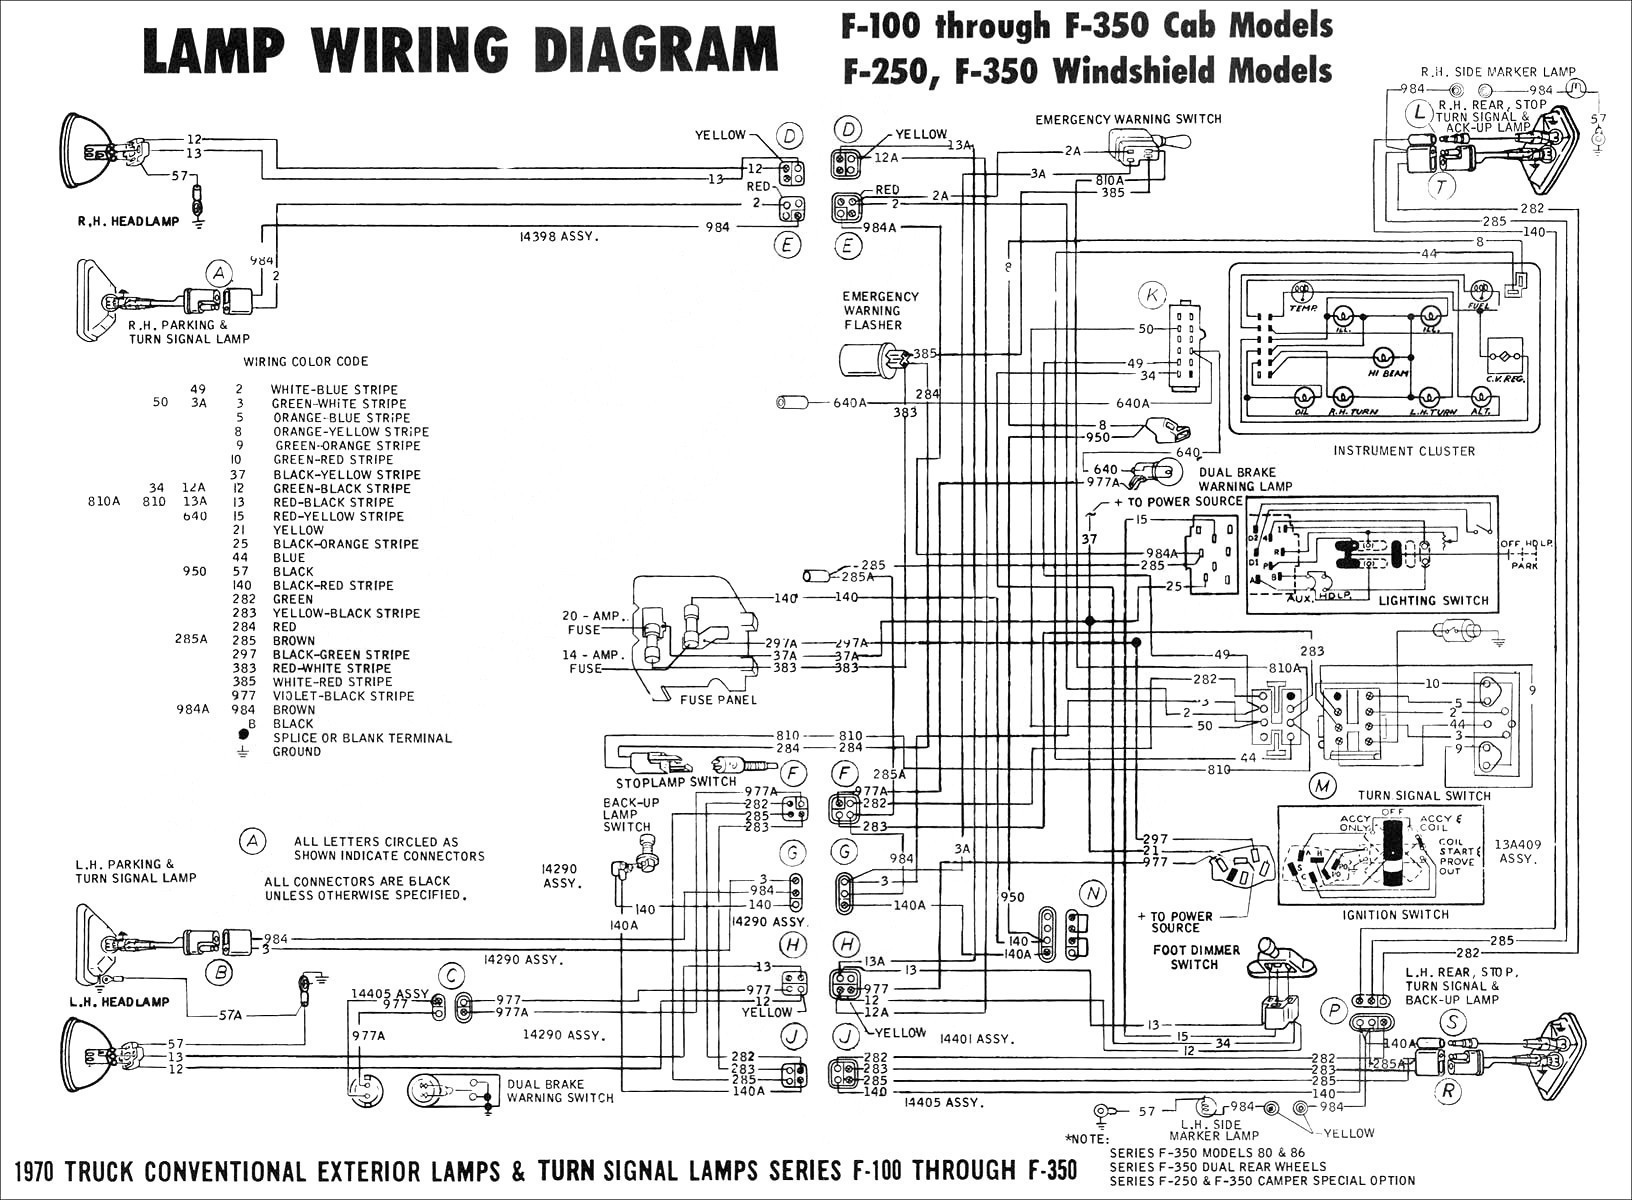 Tundra With Jbl Wiring Schematic on tundra wiring schematic, 2014 tundra radio wiring, tundra stereo wiring diagram,